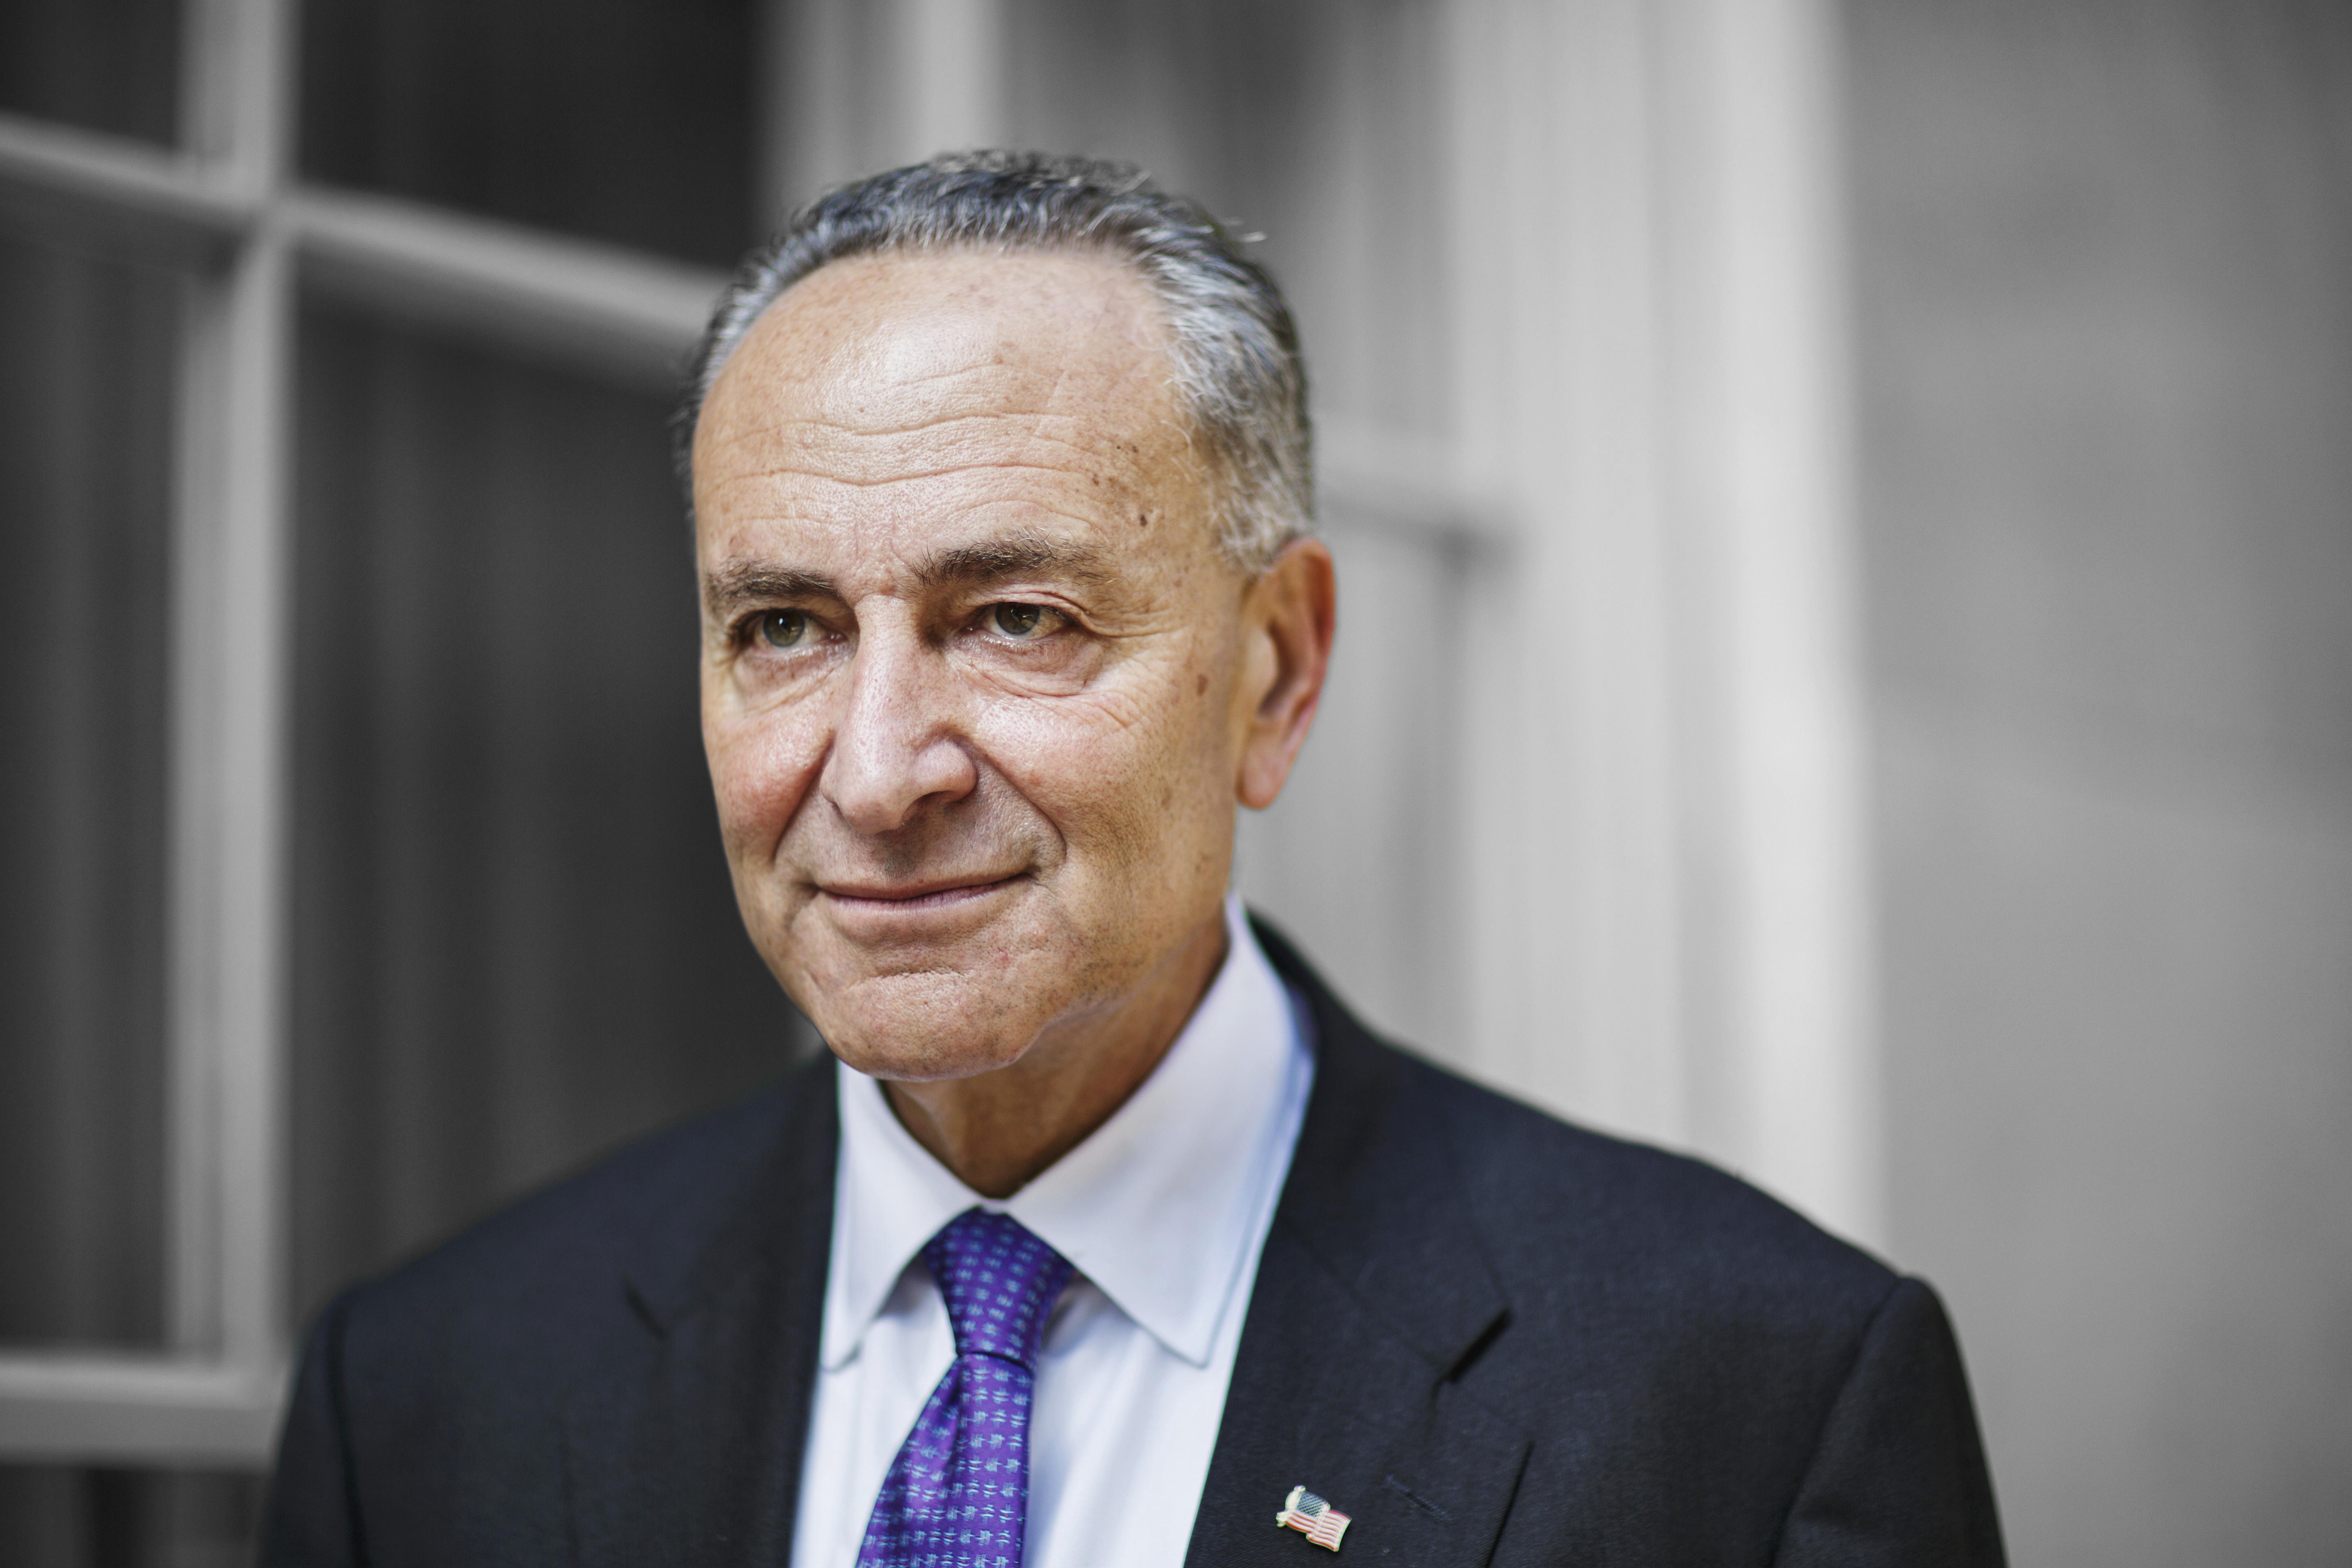 Chuck Schumer:                                When Senate Minority Leader Harry Reid steps down next year, the New York Democrat is his likely successor. His first order of business will be helping change that job title to Senate Majority Leader, but it's a tall order.